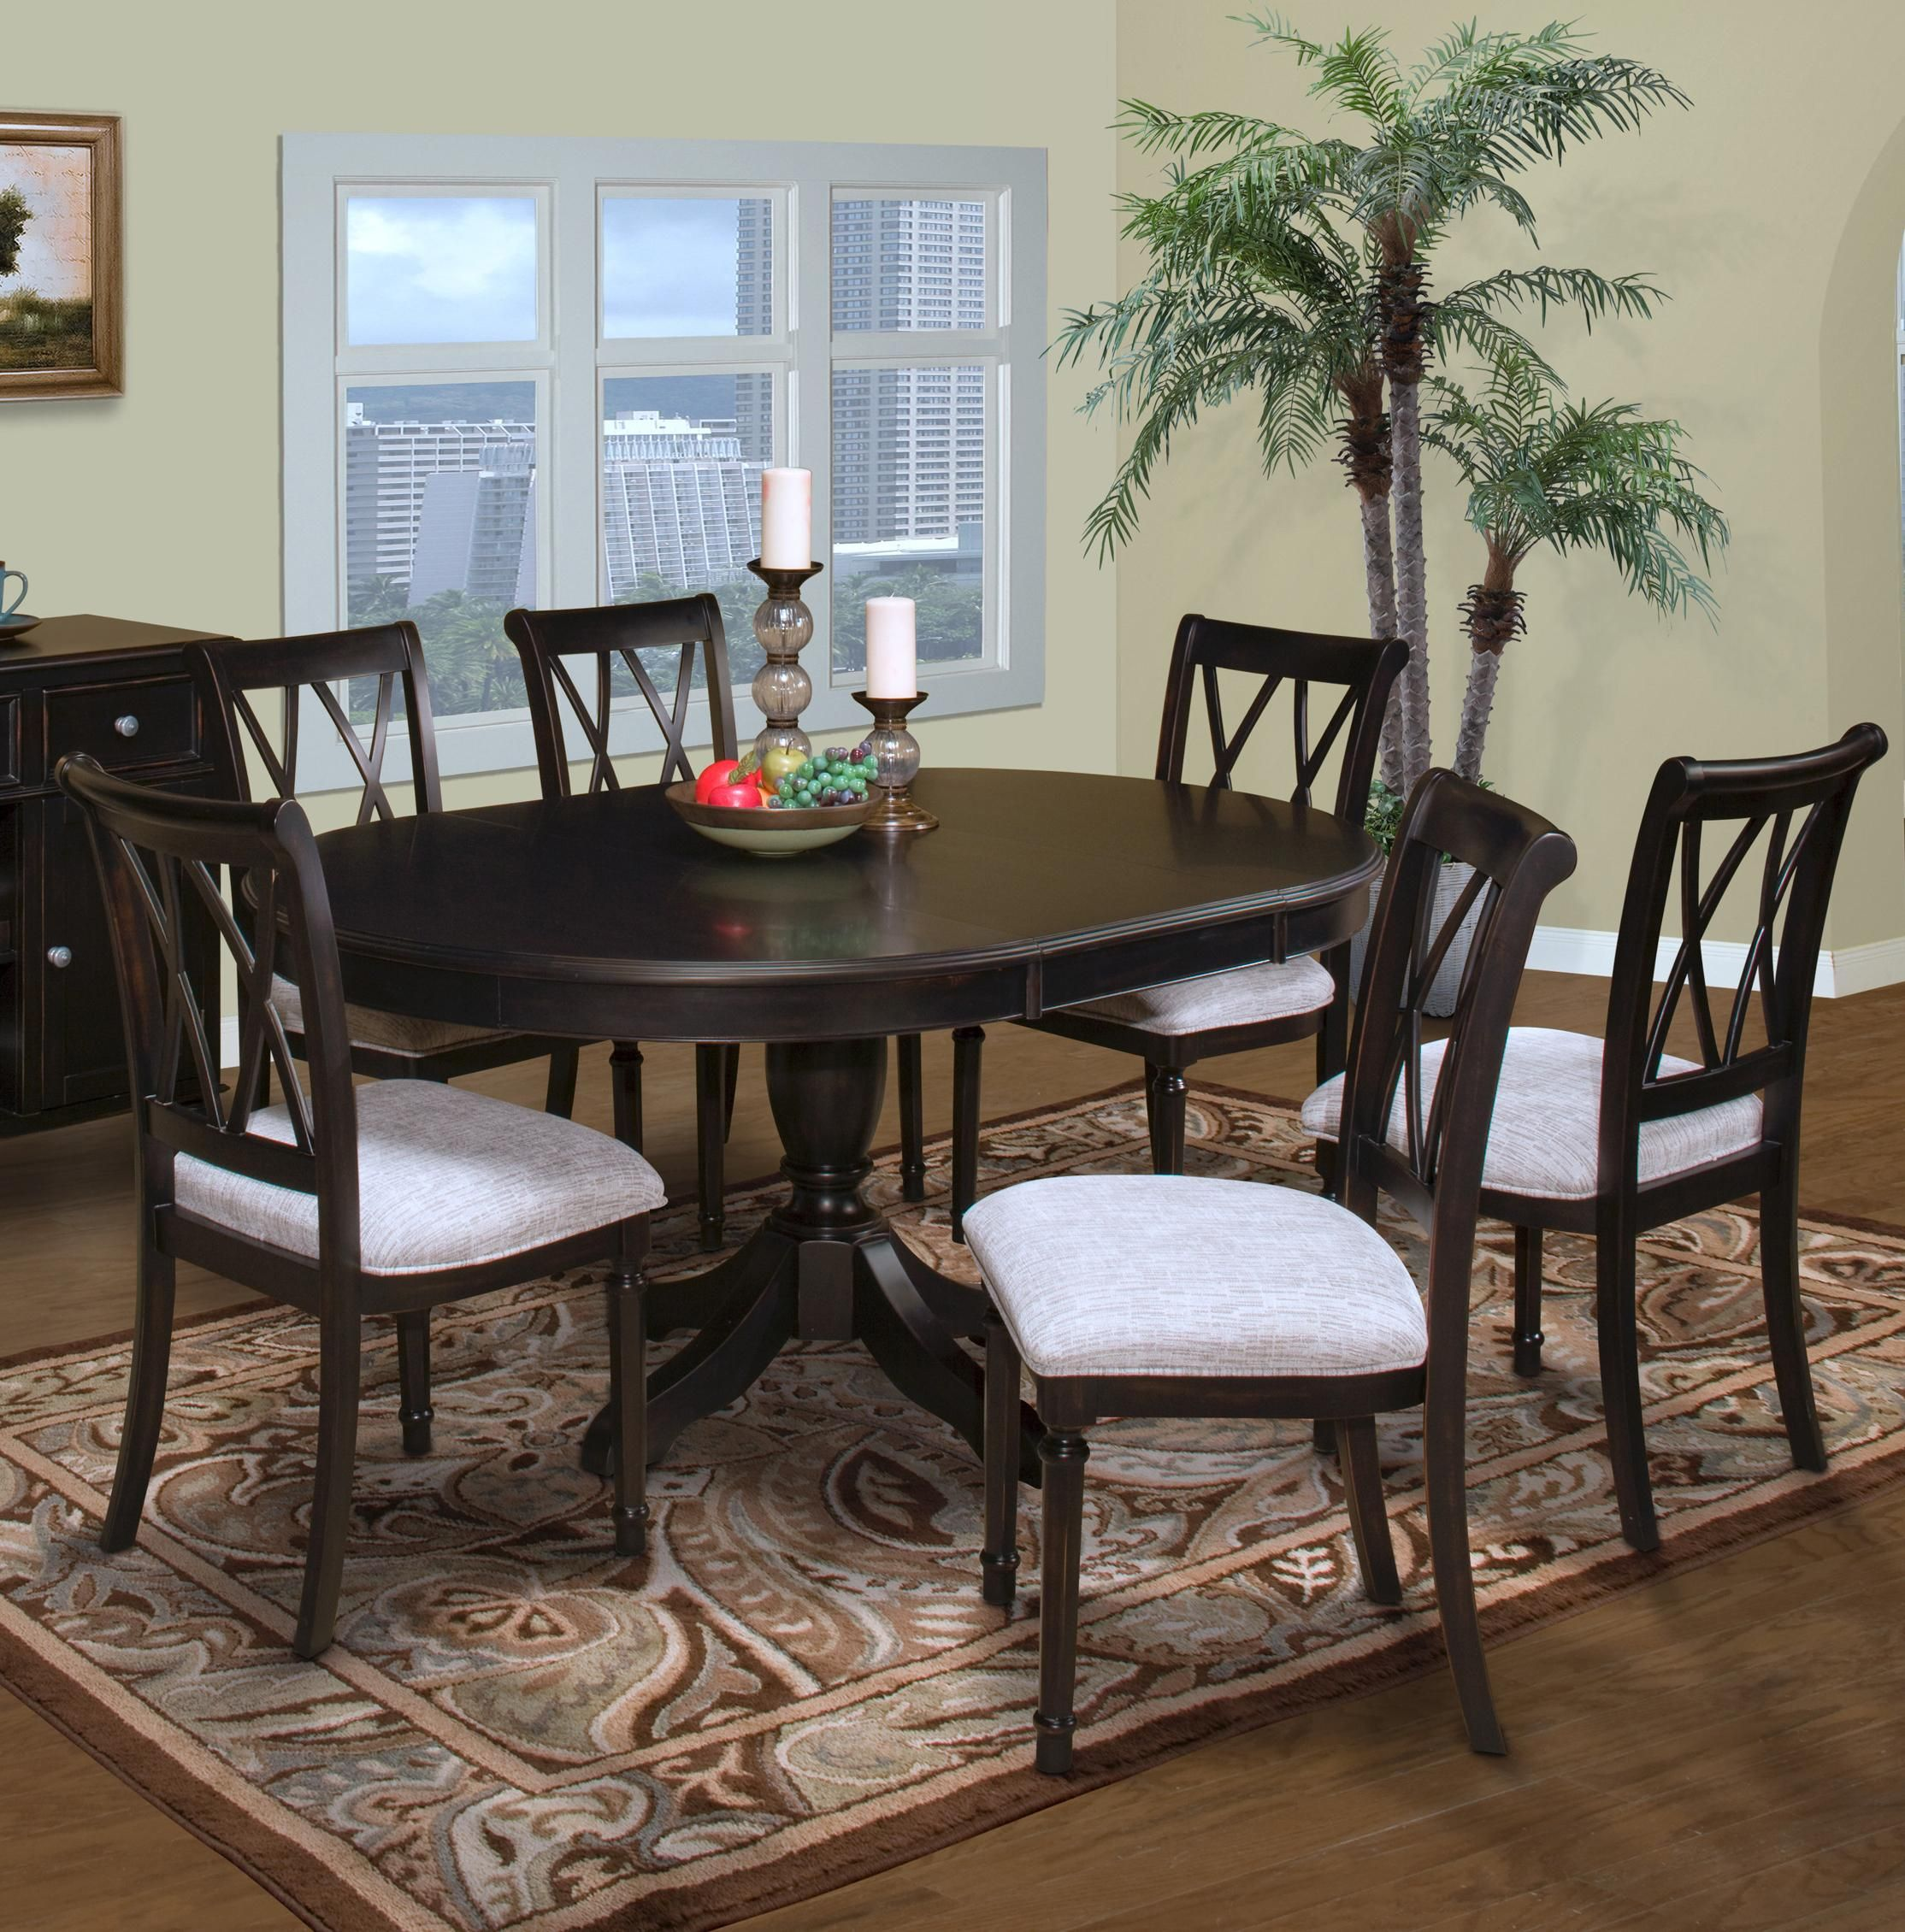 Dining Room Chairs Nebraska Furniture Mart Maryhill 7 Piece Set By New Classic Ideas For The House